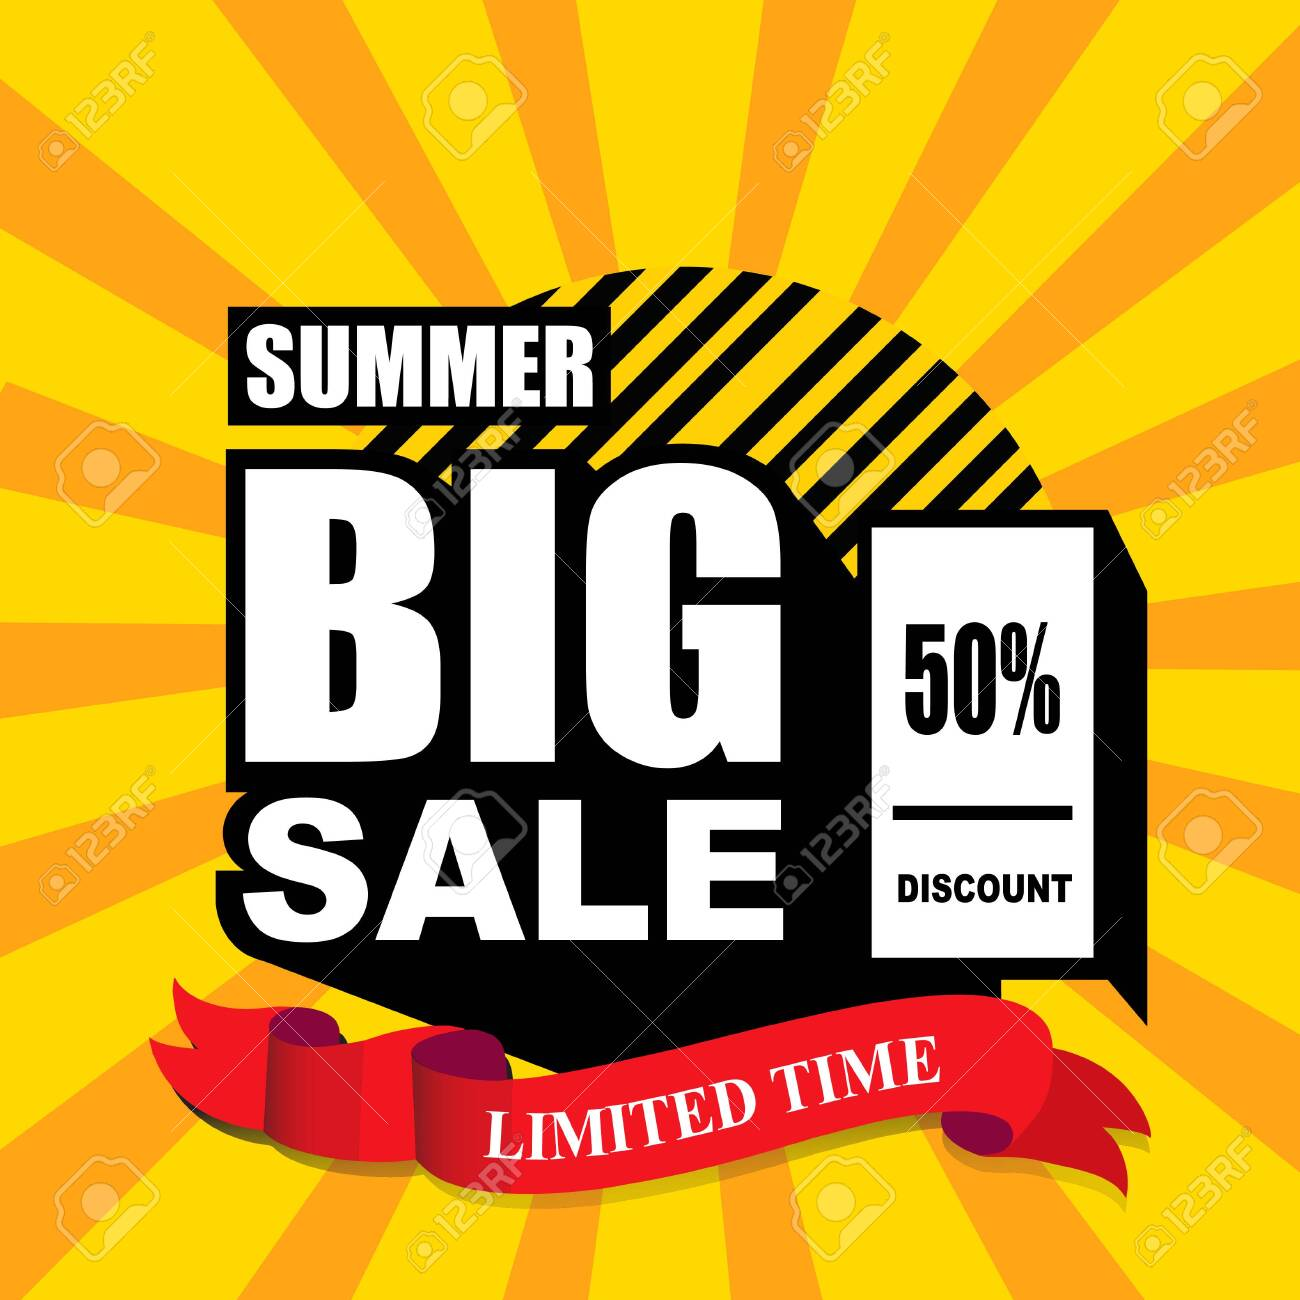 Summer Big Sale banner template design, limited time, 50 discount. end of season special offer banner. - 128645324